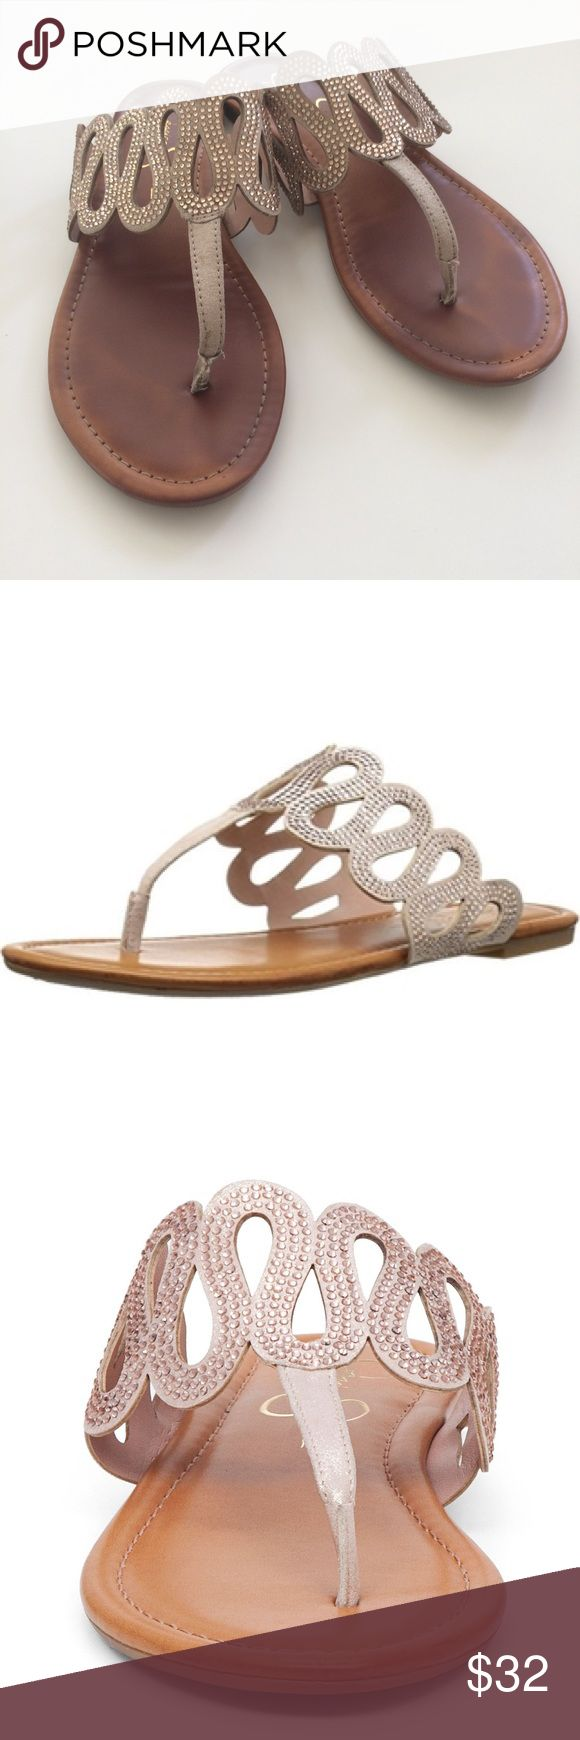 """‼️LOWEST‼️Jessica Simpson   Roldan Sandal {6.5} Purchased last summer and worn twice for wedding festivities. Size 6.5, true to size. Color is """"Natural"""", stones appear a light gold color. I do not notice any missing stones, and the shoes are in great, gently worn condition! Lots and lots of life left to these! I would keep them, but I truly don't wear them frequently enough. The first 2 photos are stock photos from the Jessica Simpson site. 💓 {NO trades, price firm} Jessica Simpson Shoes…"""